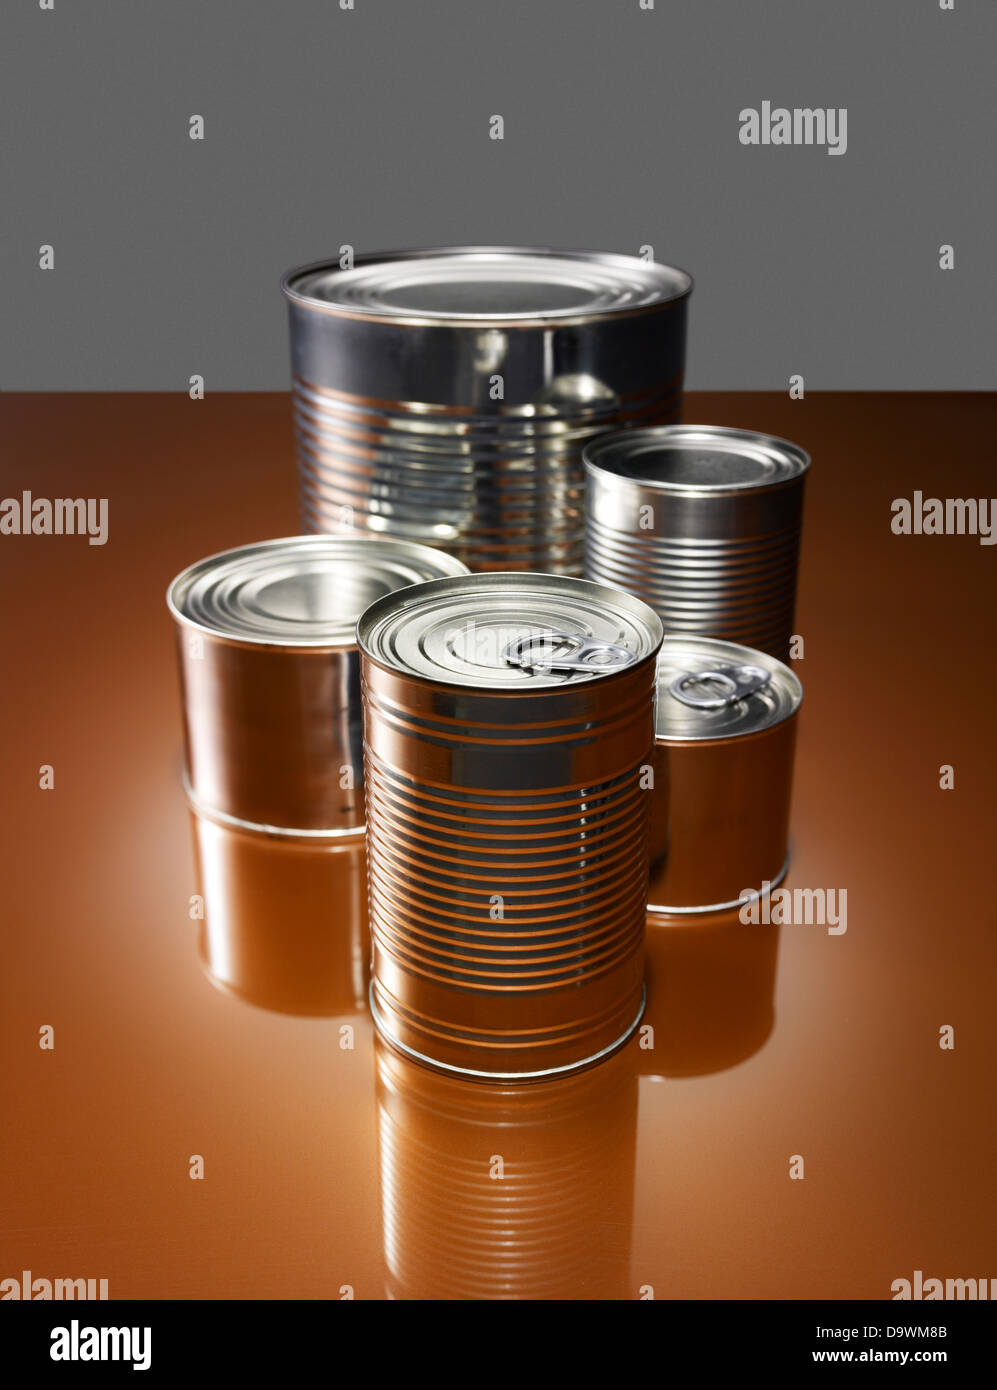 Cans - Stock Image